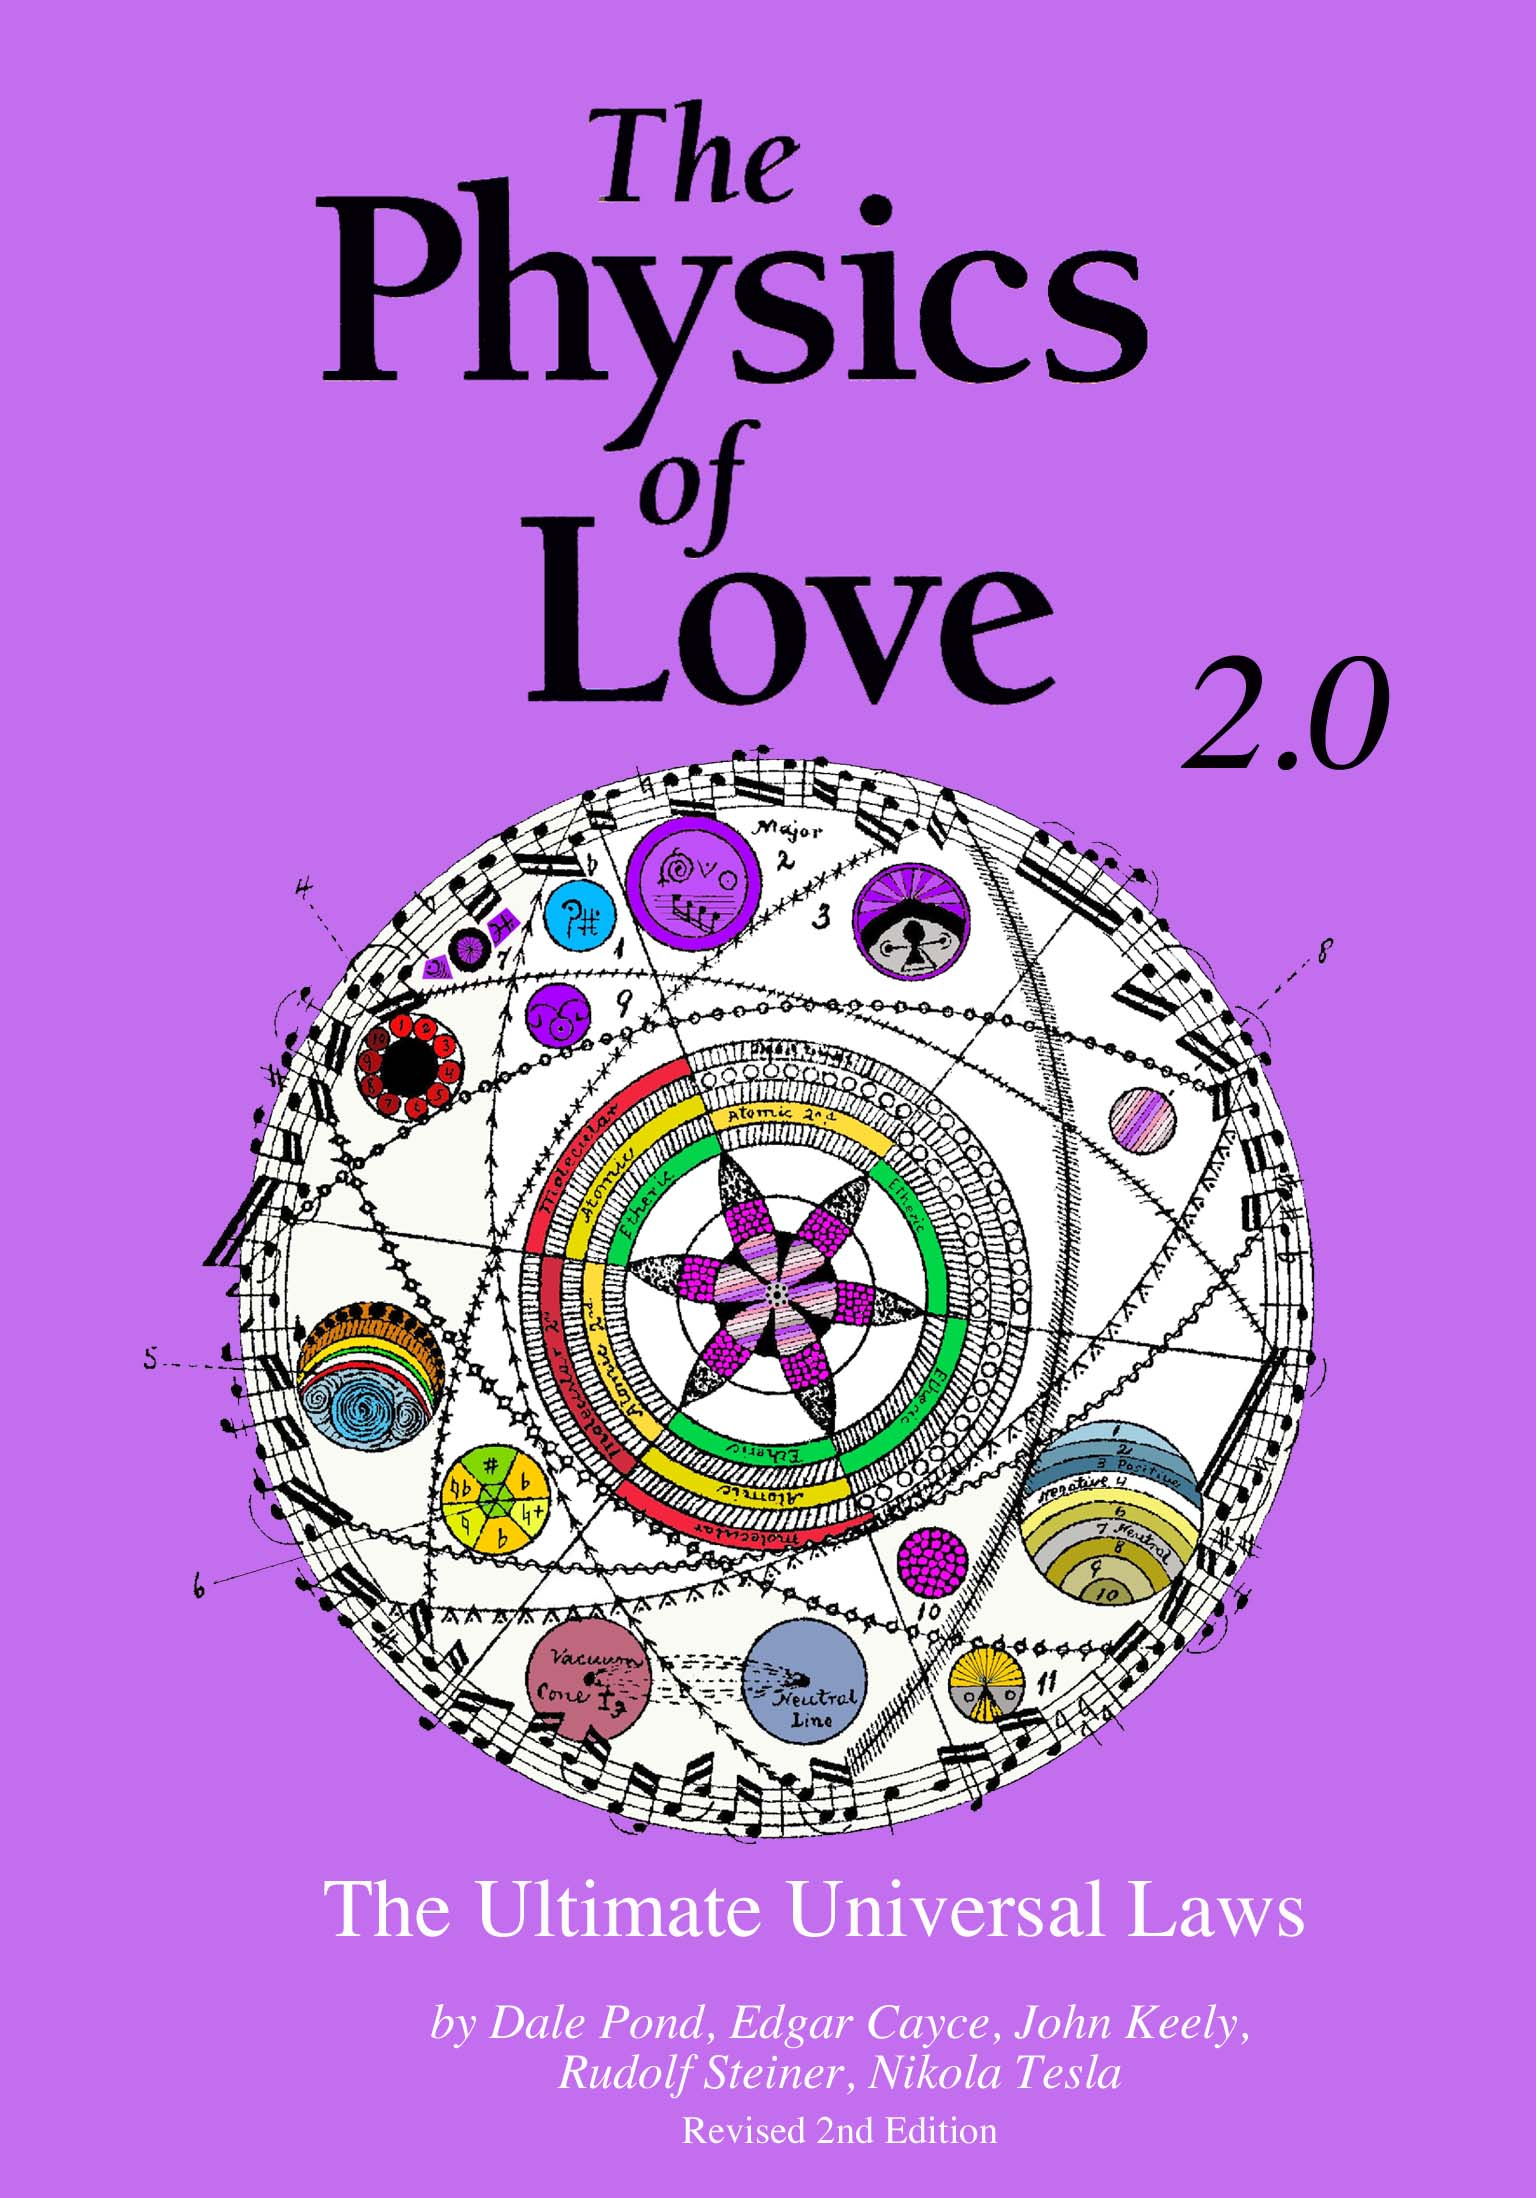 The Physics of Love 2.0